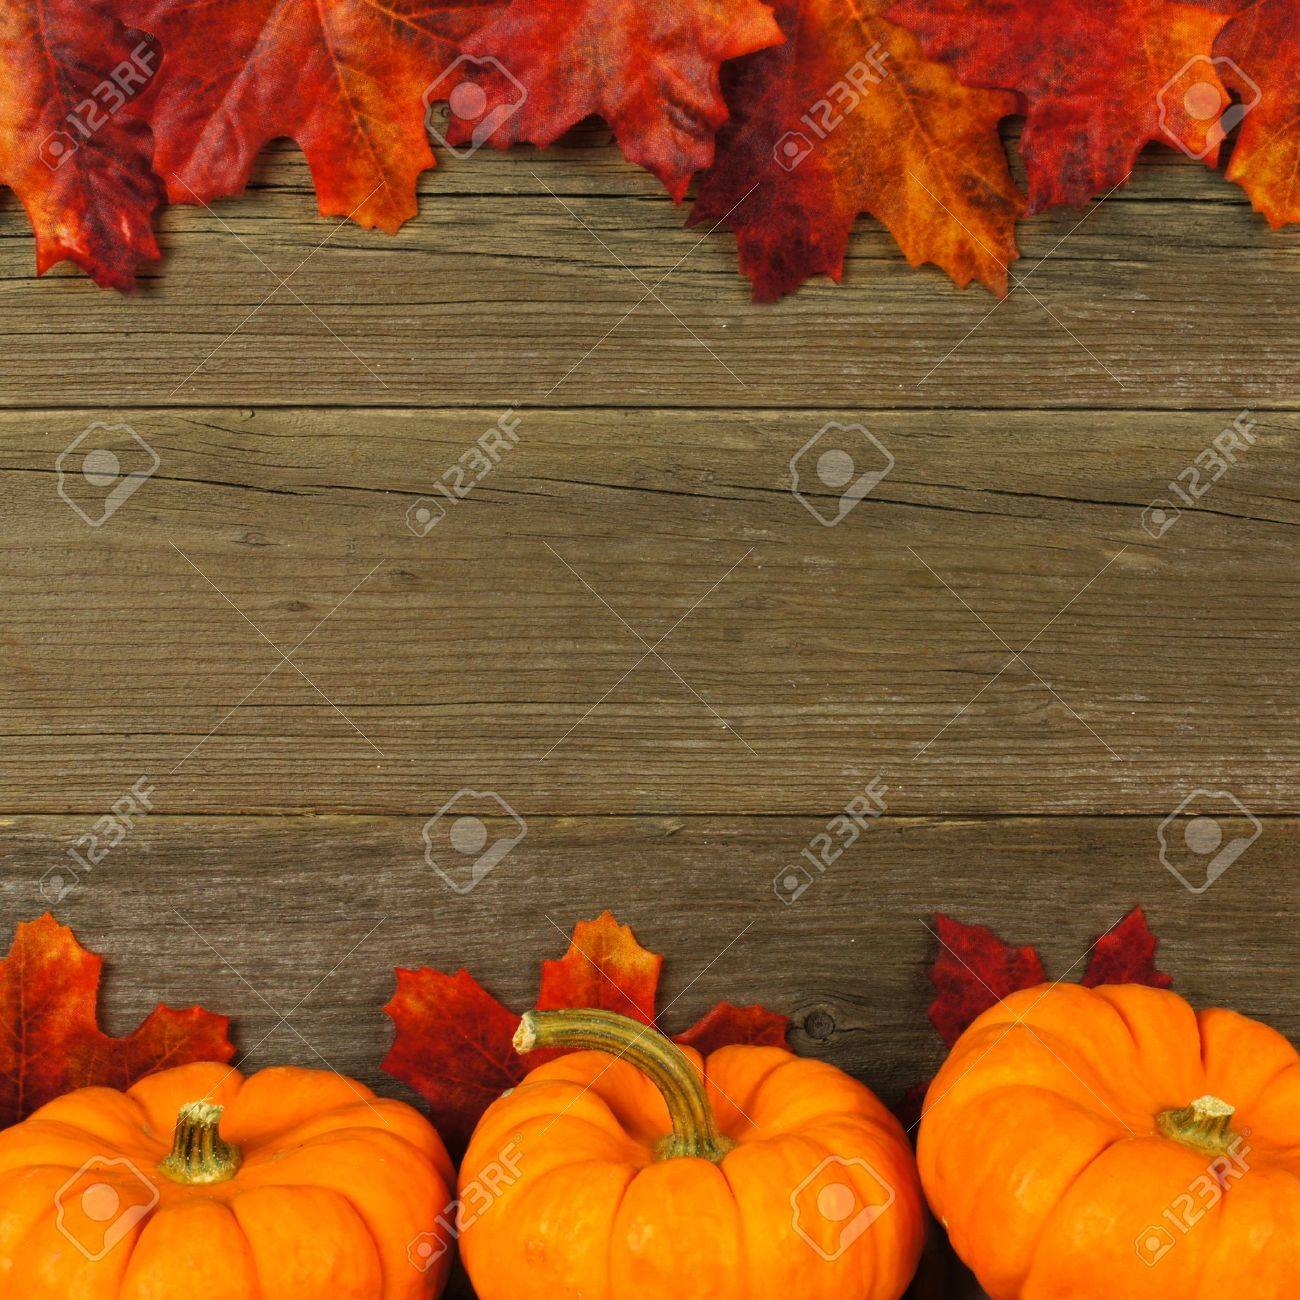 Autumn leaves and pumpkin frame against aged wood